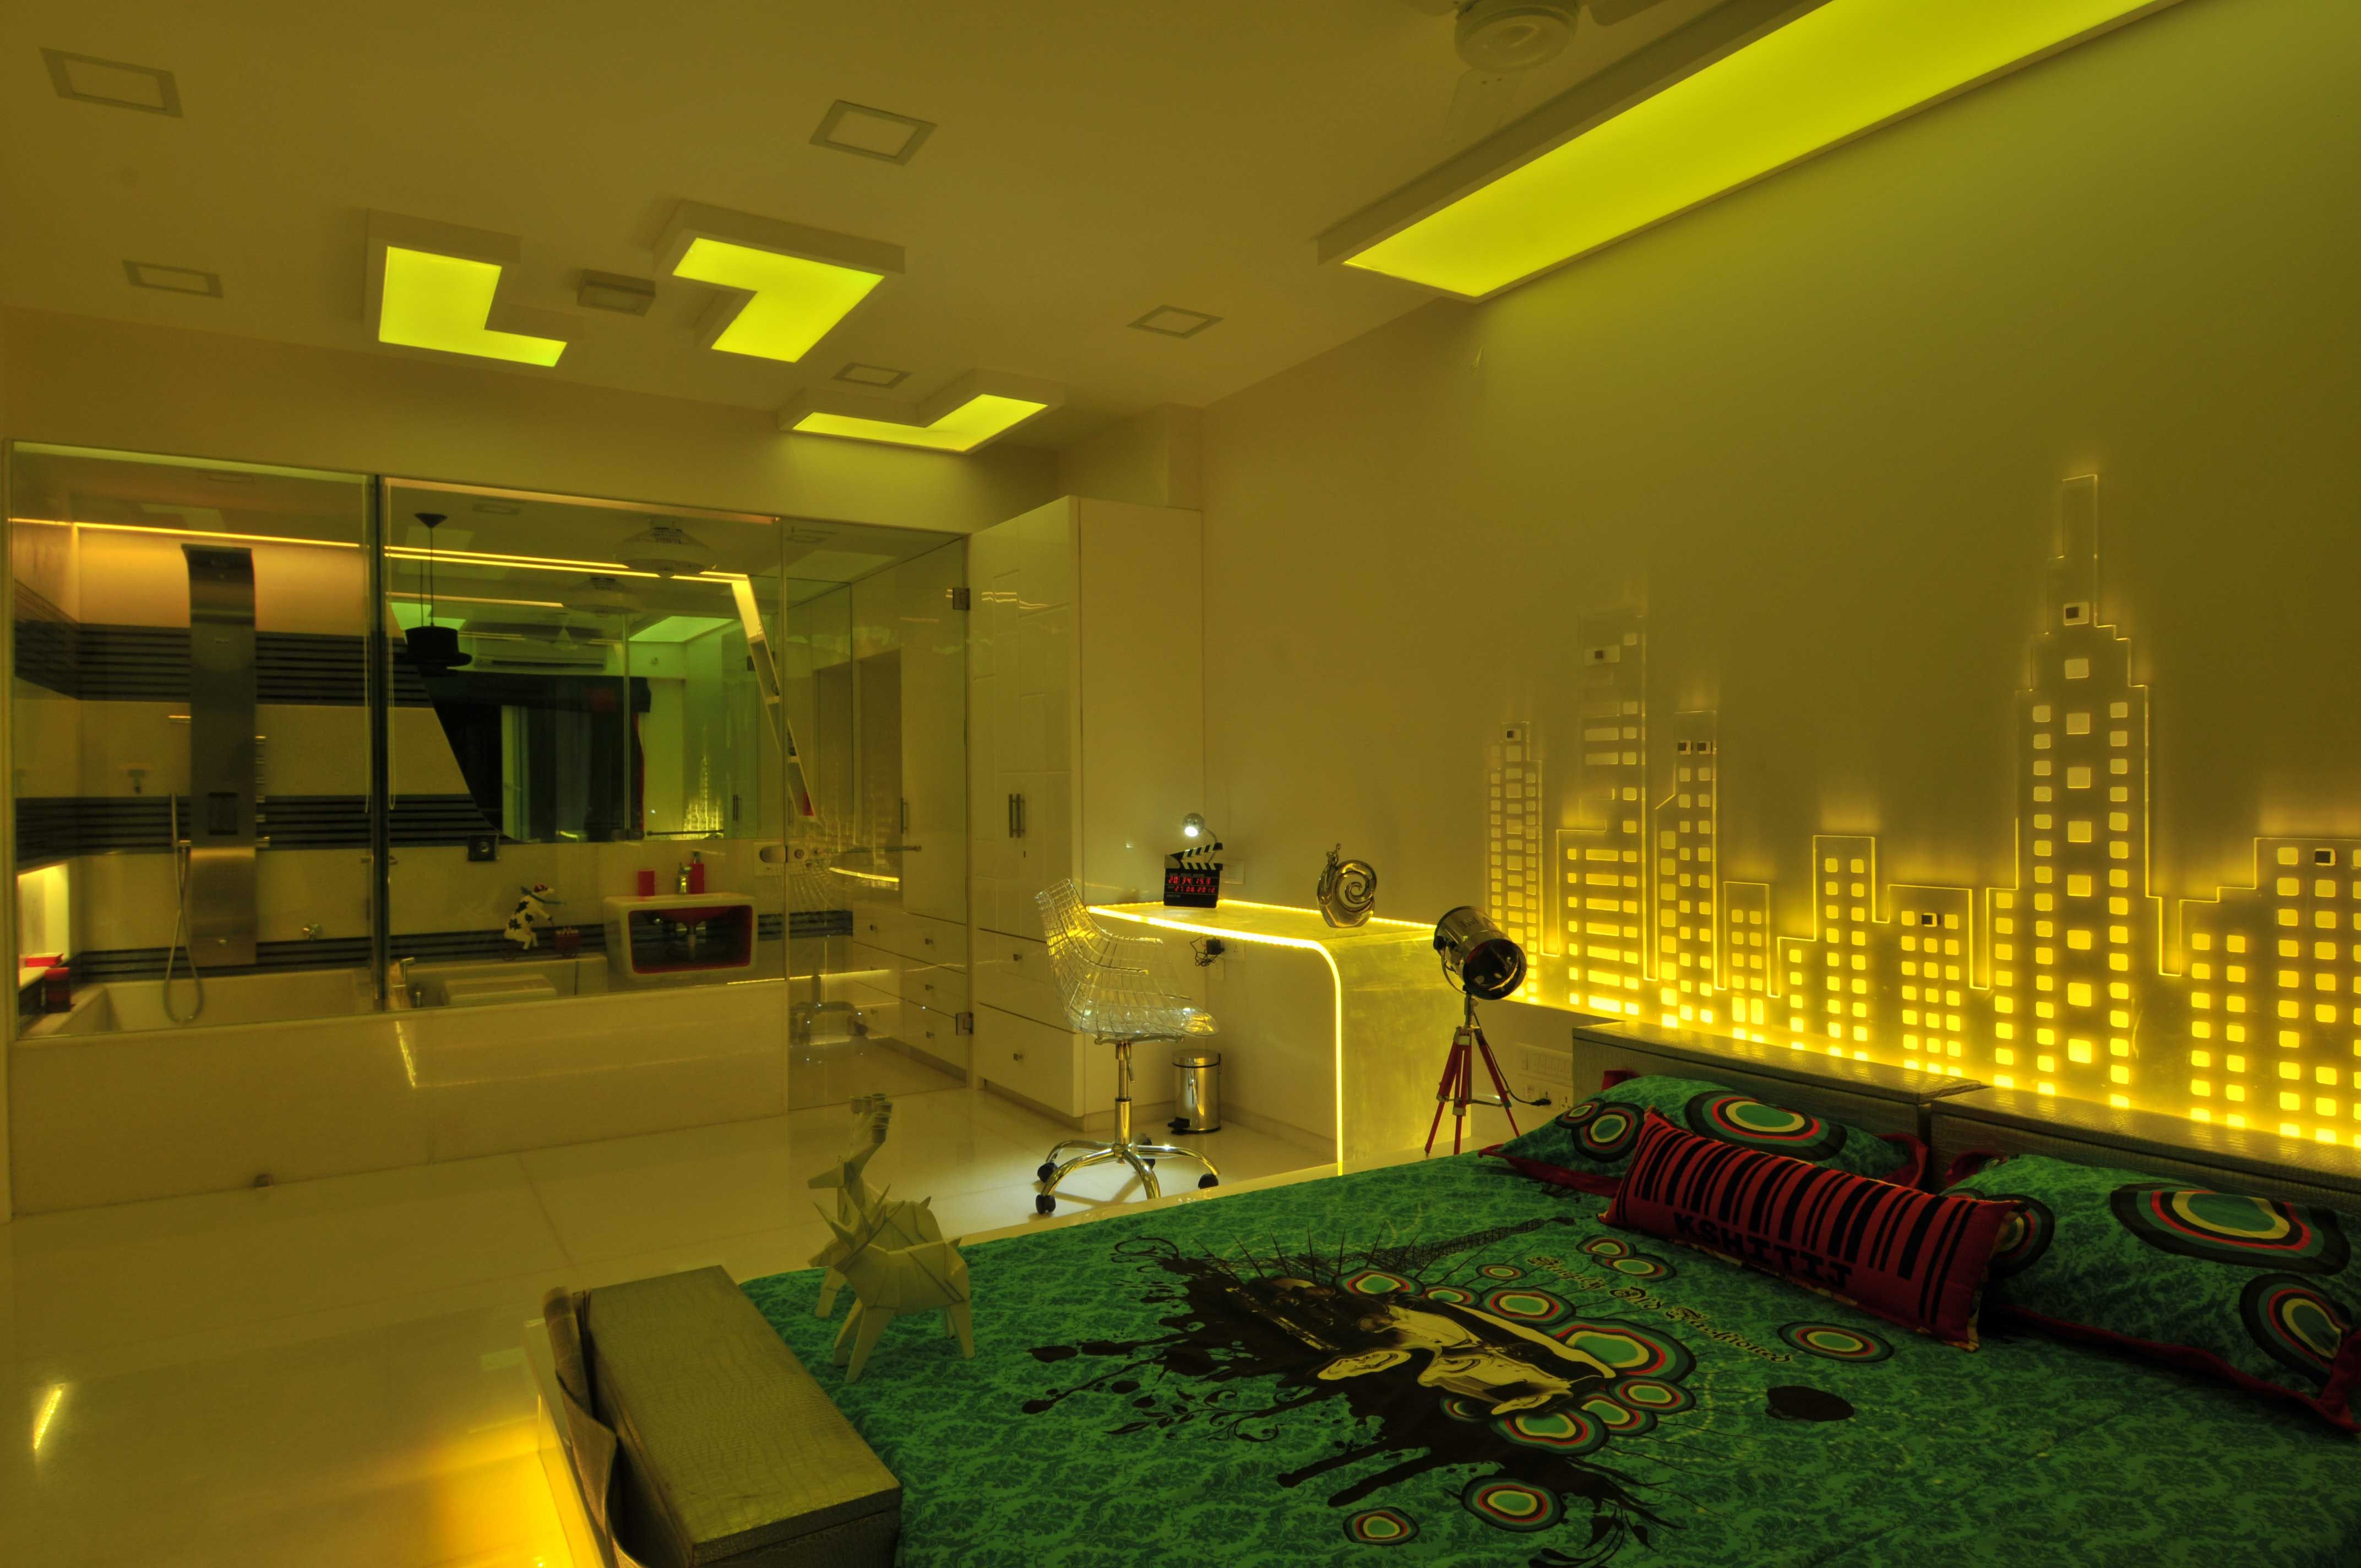 luxury bedroom with neon light, design by Architect: Sonali Shah, Mumbai, India.